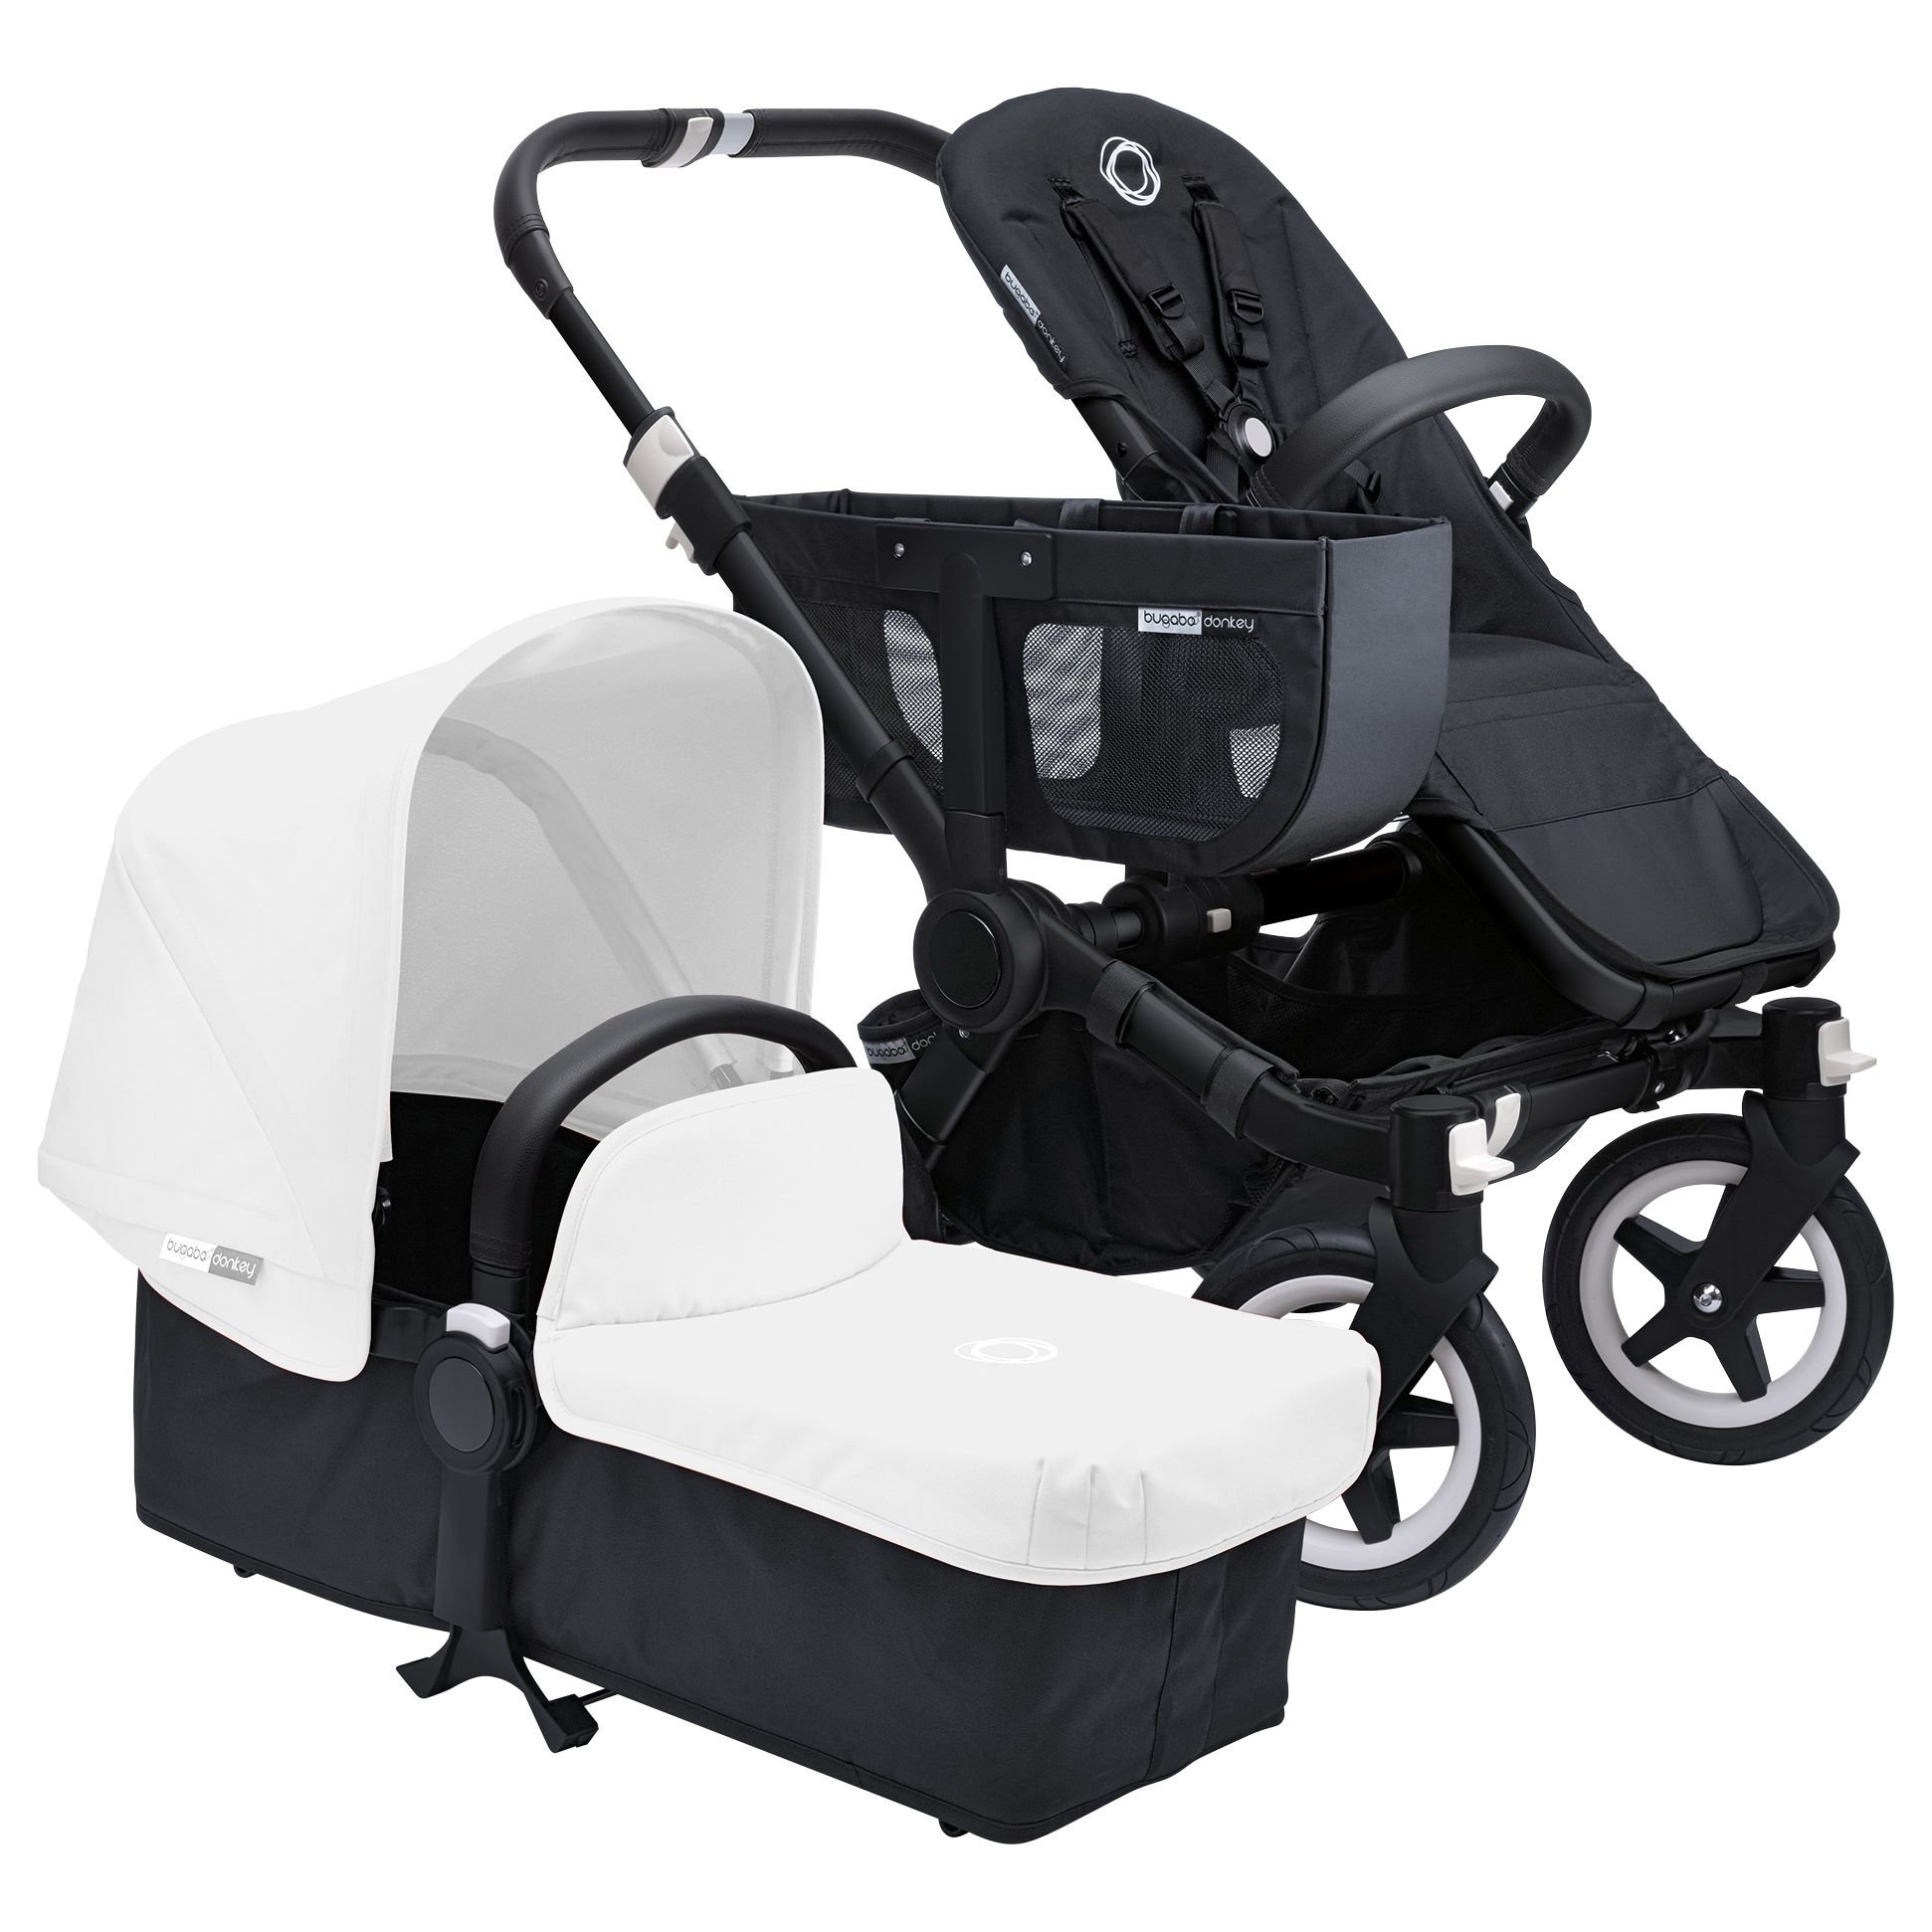 Bugaboo Bugaboo Donkey Base Pushchair Chassis and Carrycot 2016, Black/Black